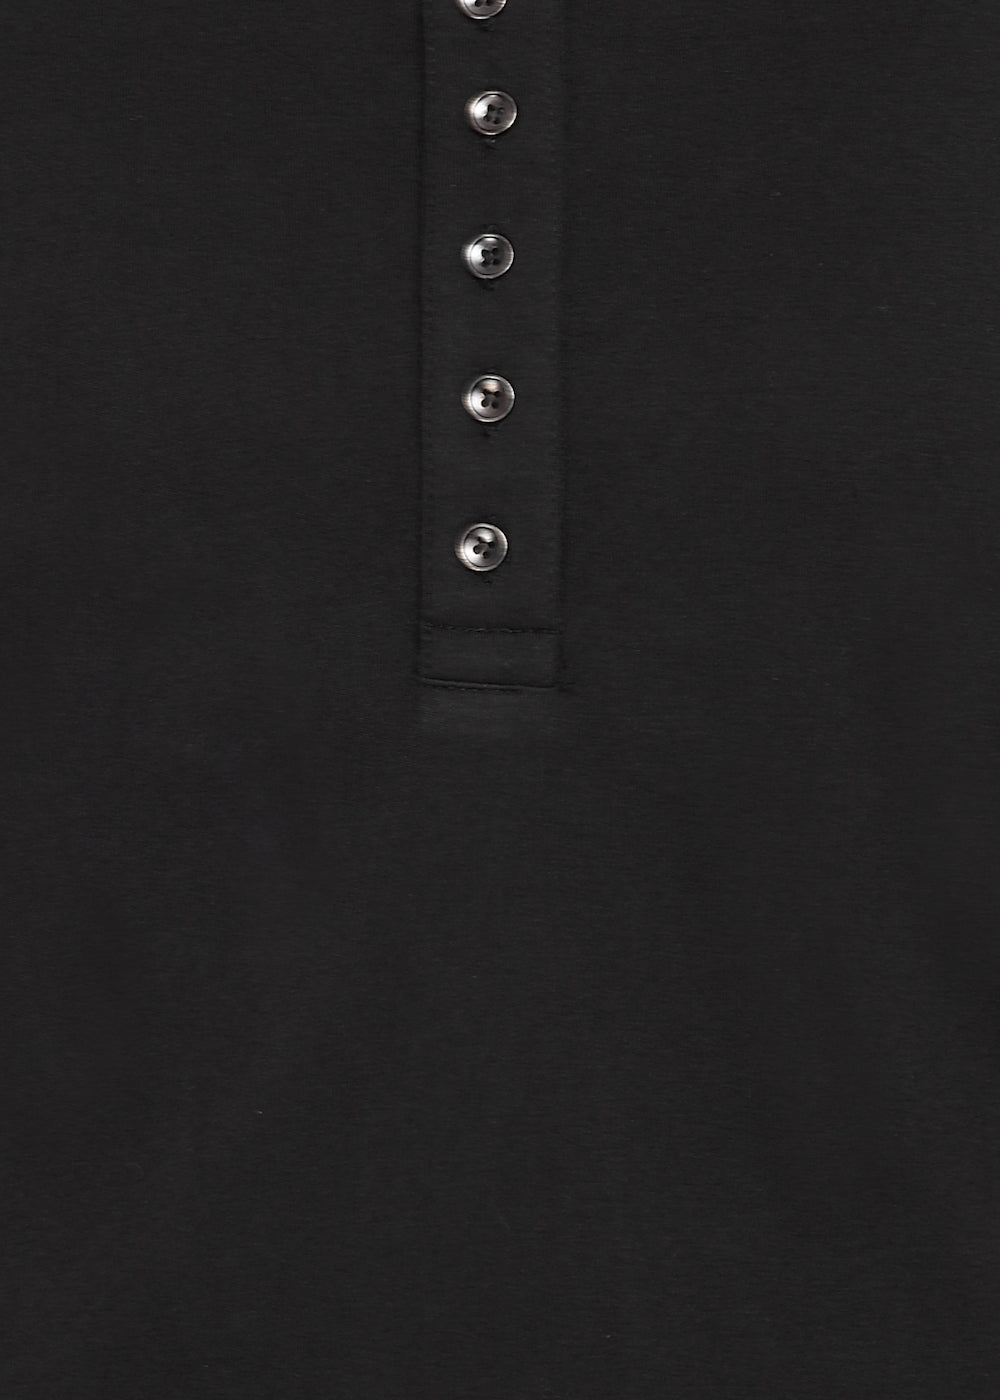 Black Knit Half Sleeves Round Neck Top with Buttons - GENZEE